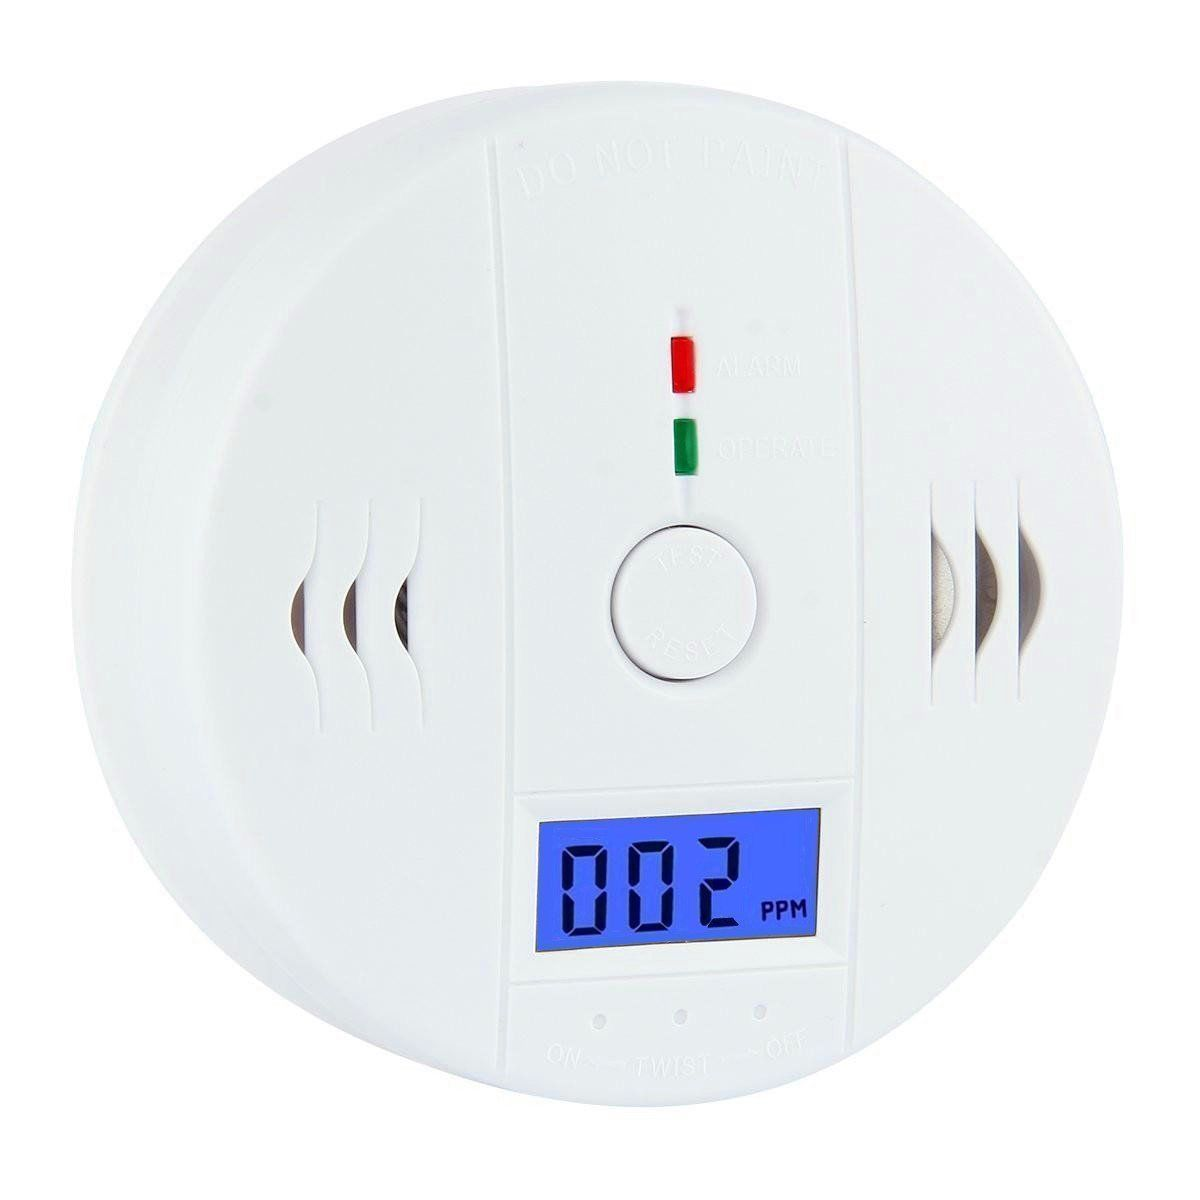 Carbon Monoxide Detectors The Best Professional Home Safety Wireless Co Carbon Monoxide Poisoning Smoke Gas Sensor Warning Alarm Detector Lcd Displayer Kitchen Security & Protection